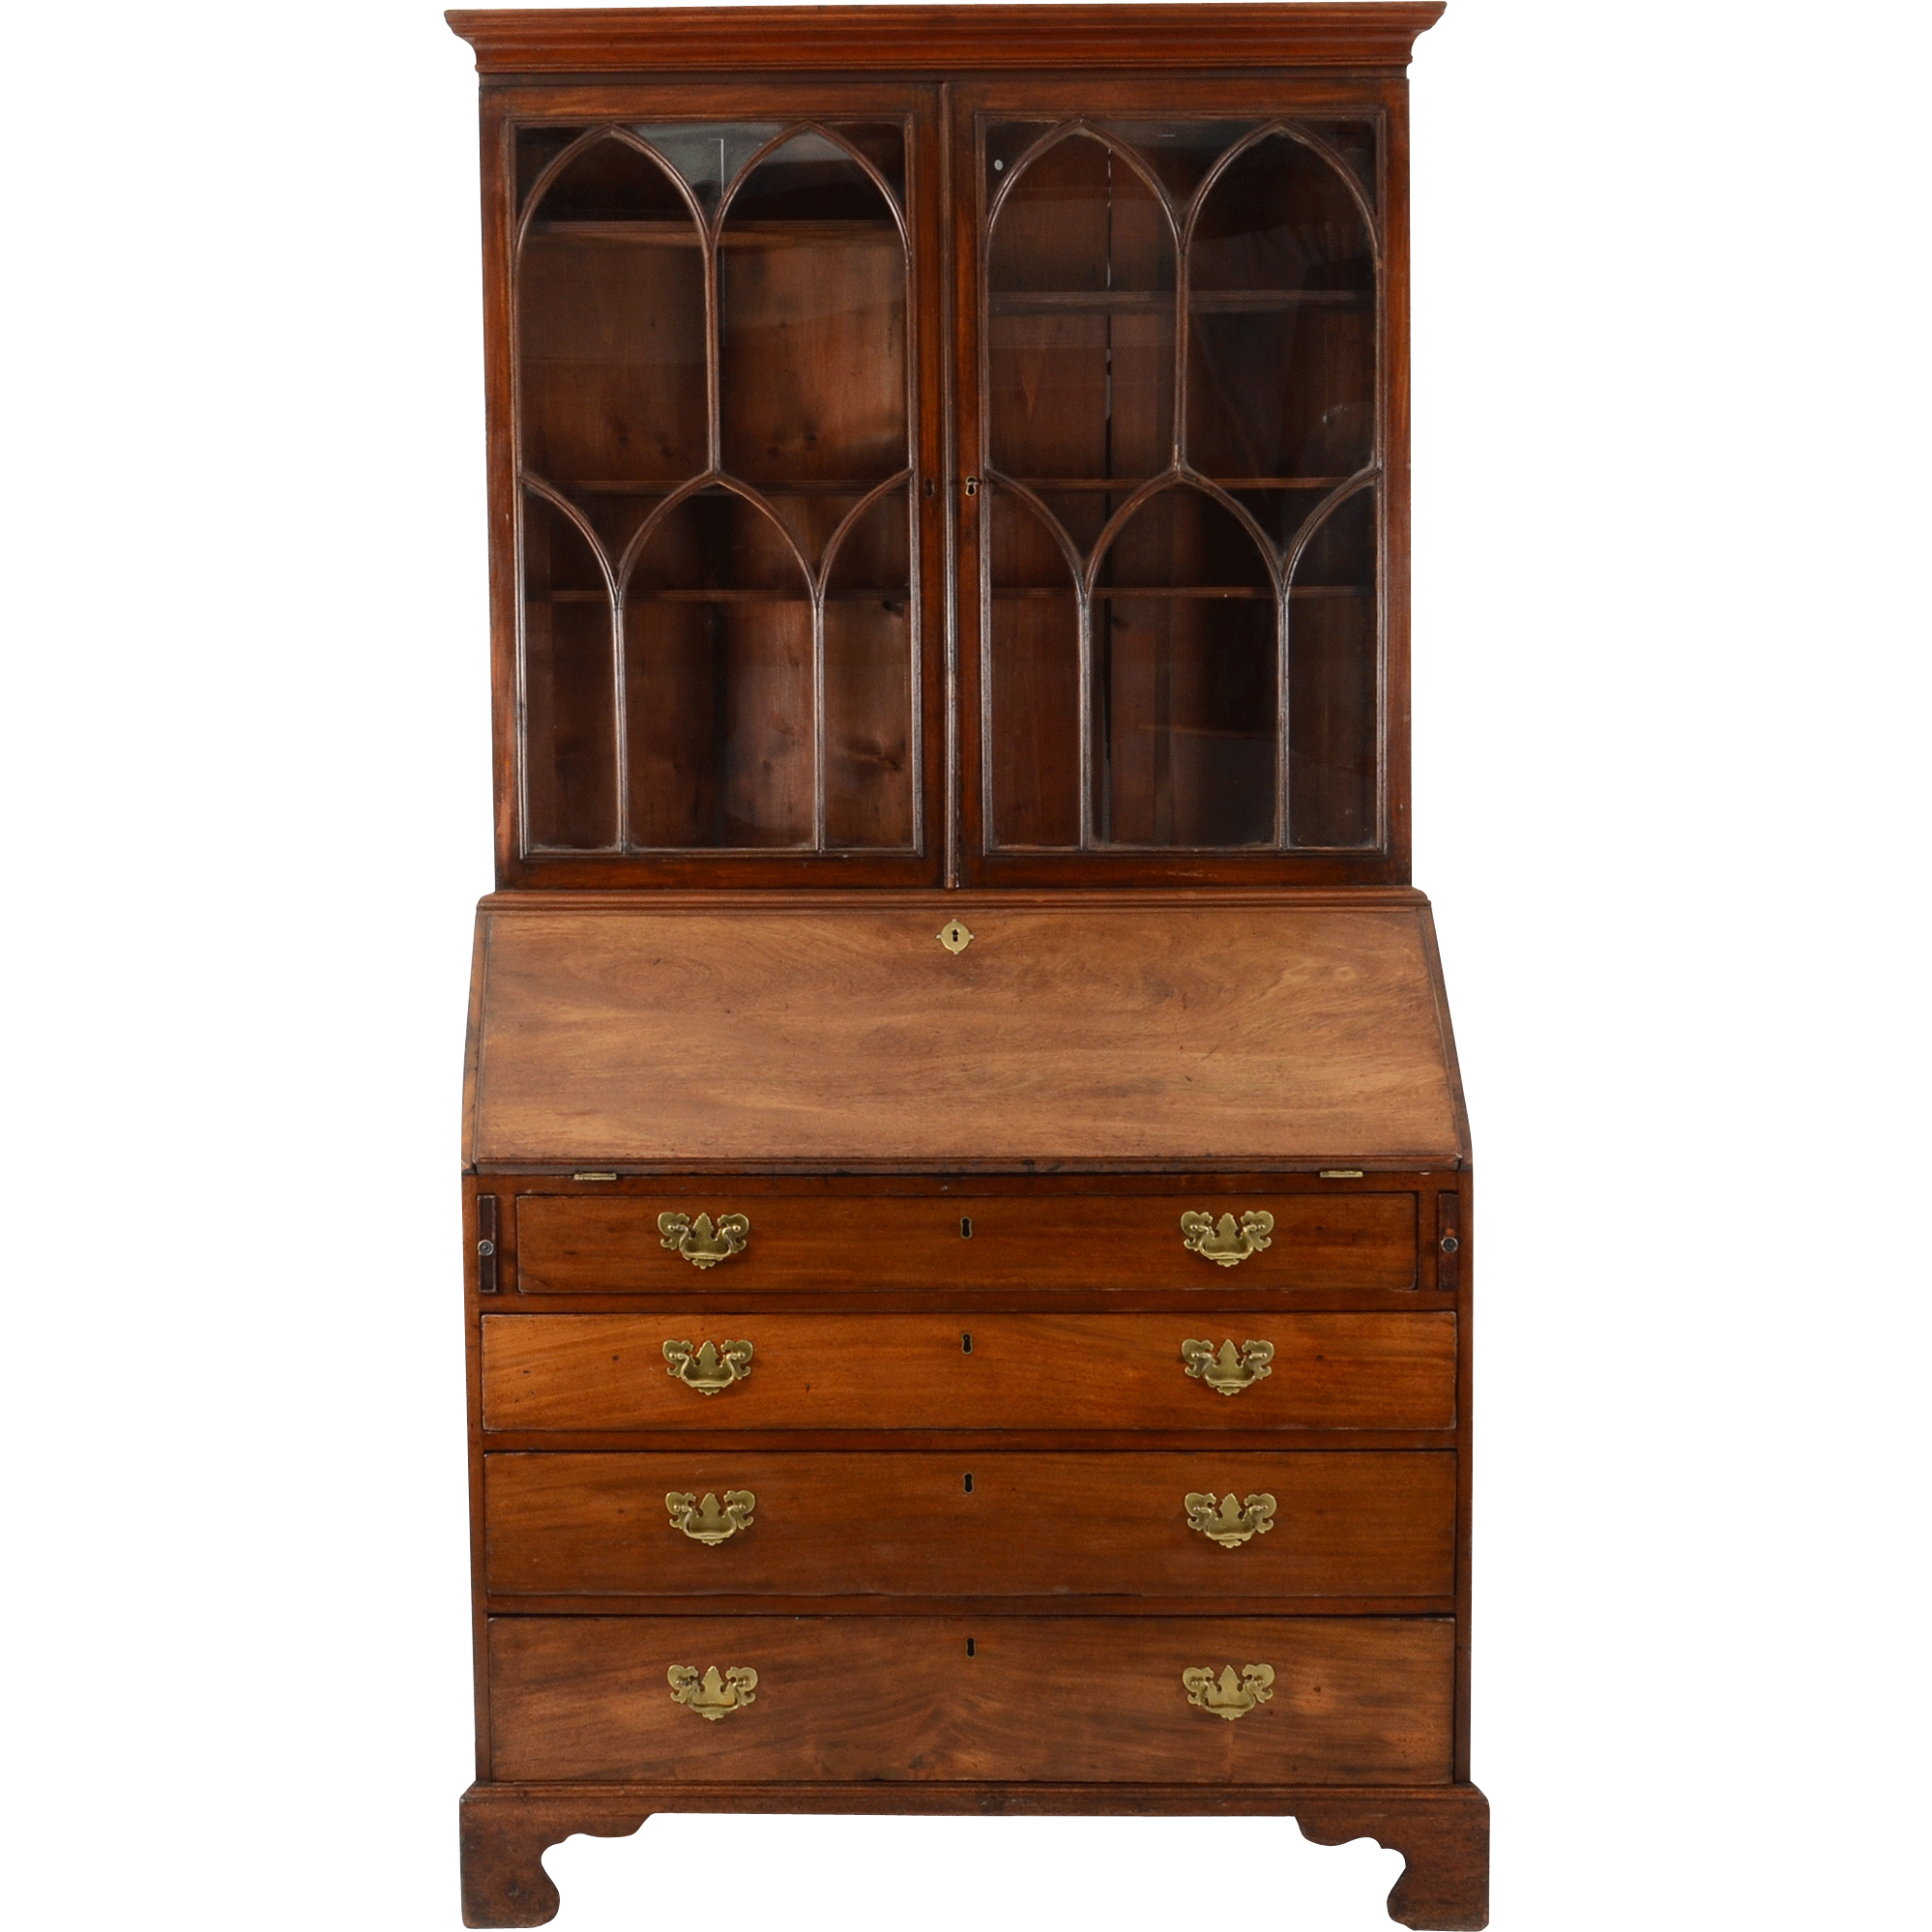 English George III Mahogany Bureau Bookcase